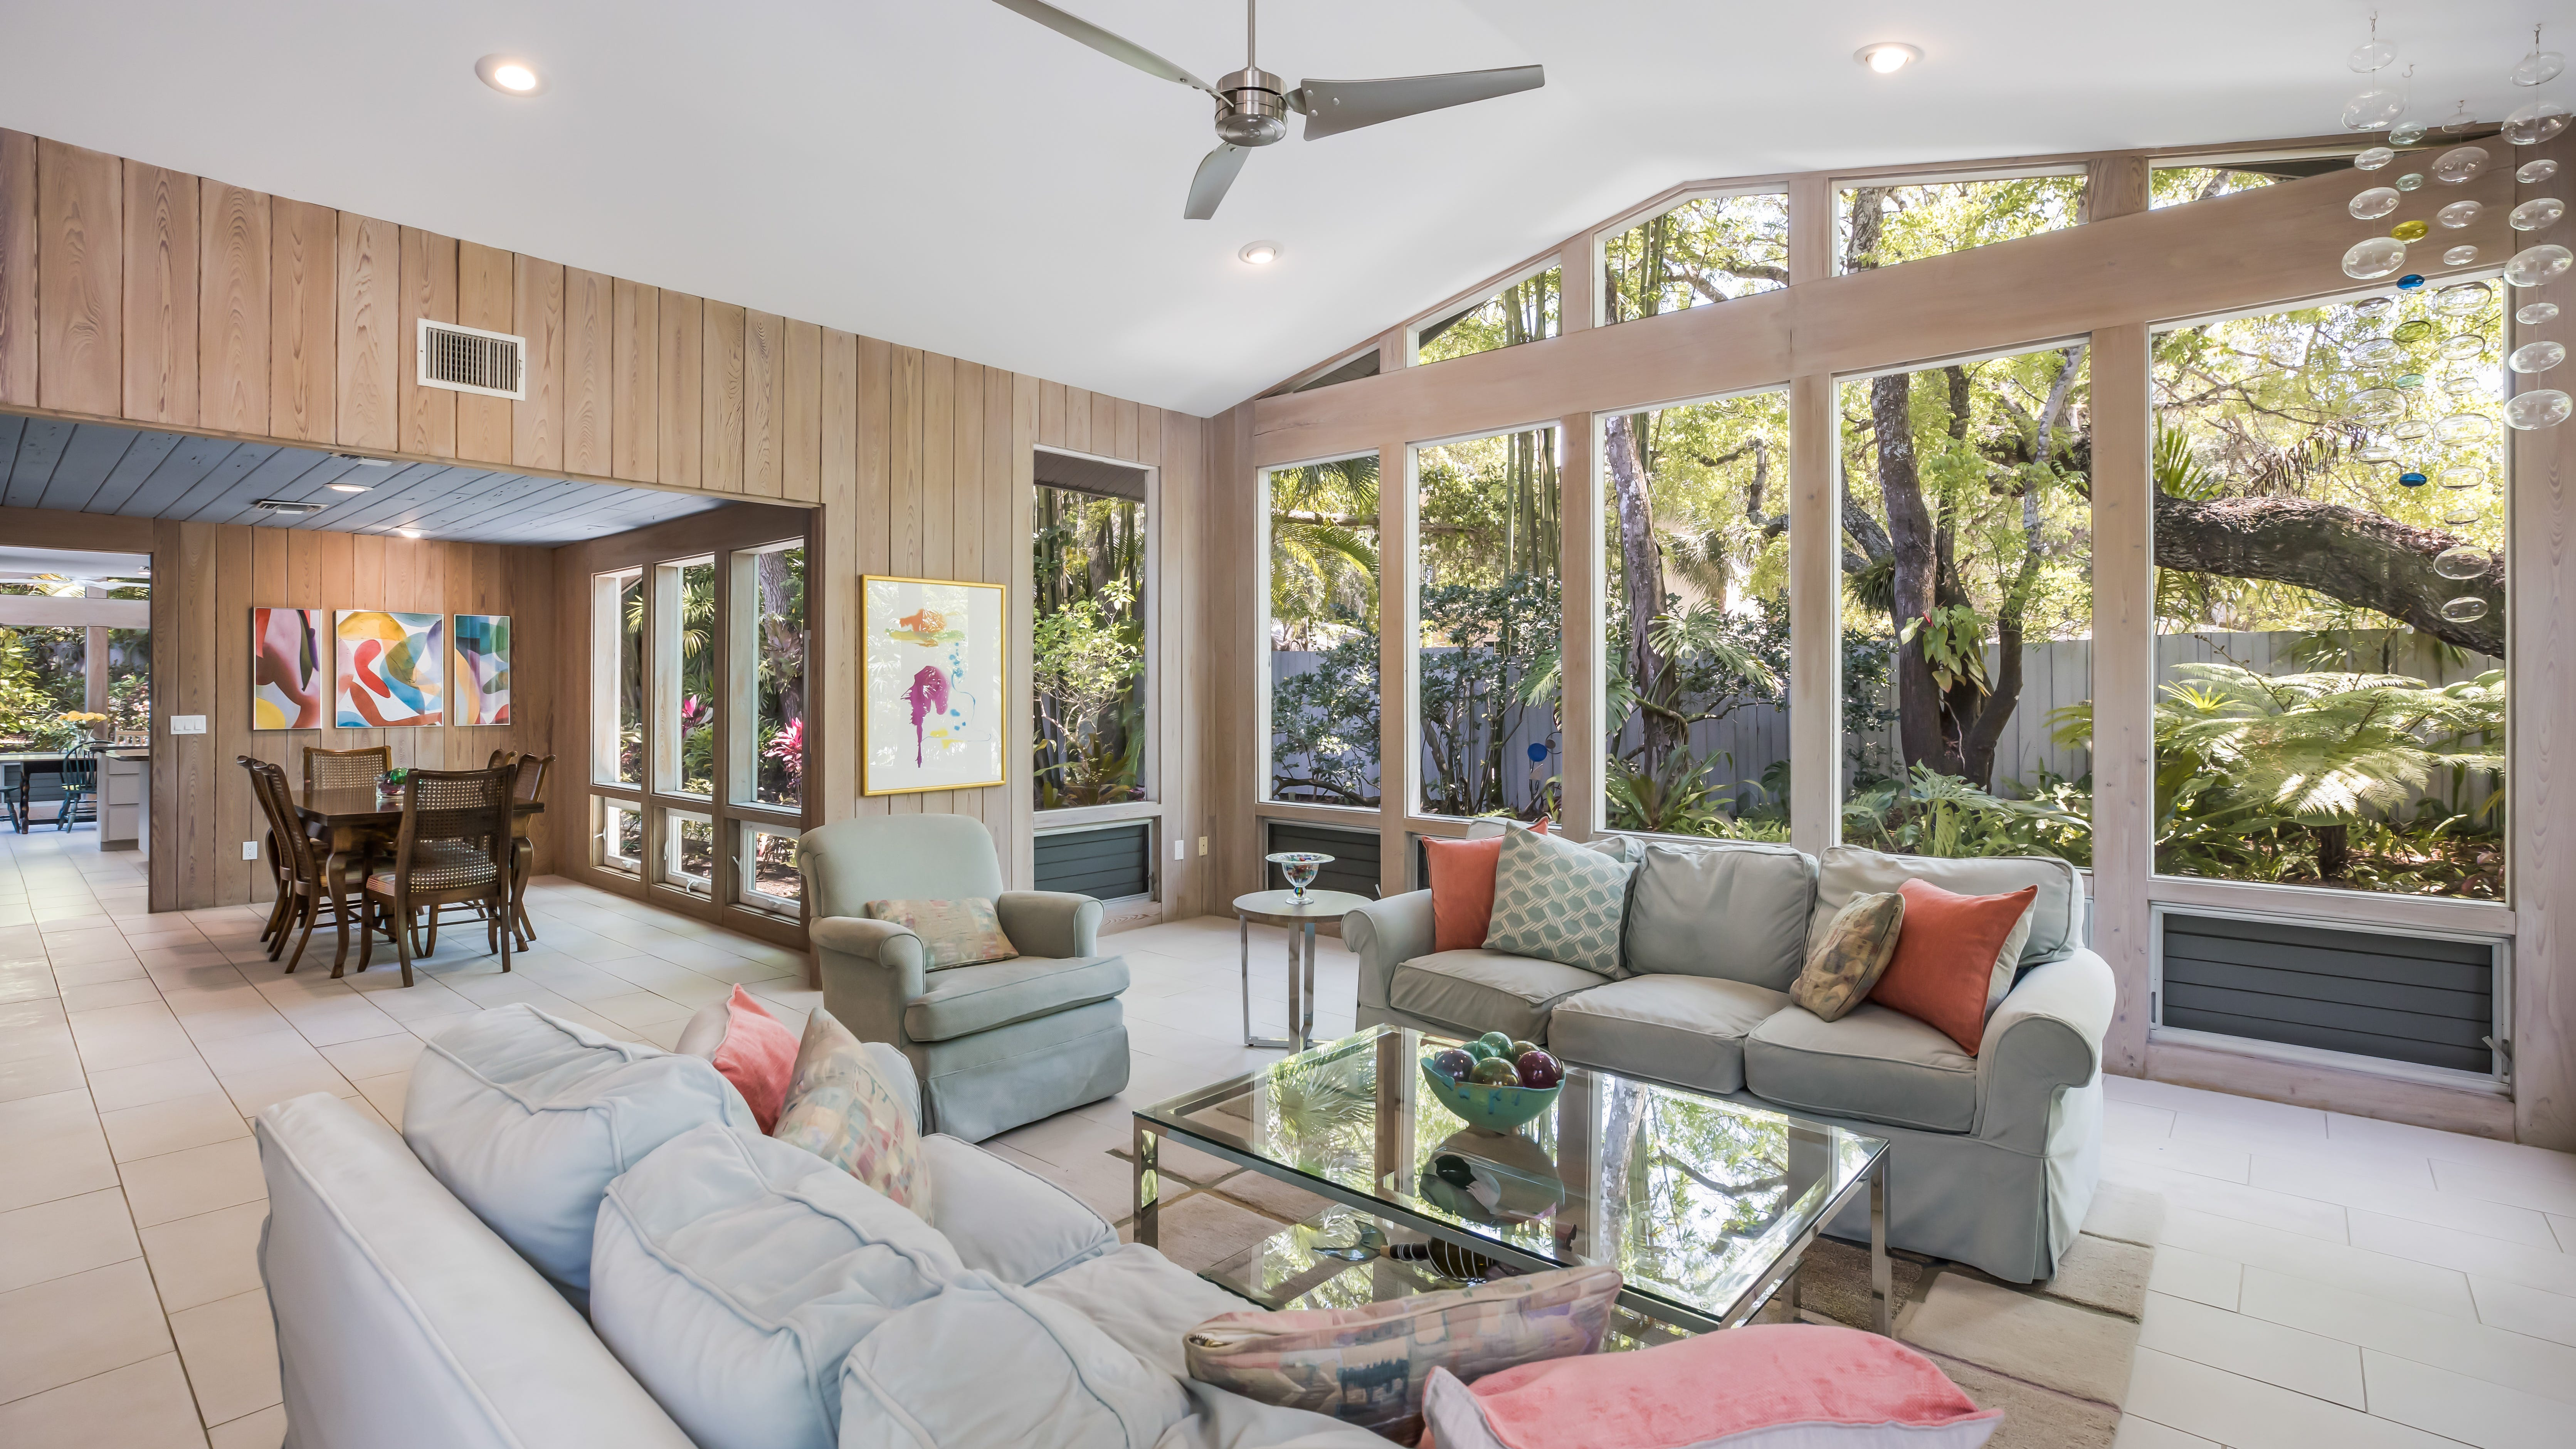 This  has clerestory windows. vintage home for sale on Old Oak in Sarasota is vaulted and there's a fireplace. The walls and ceiling are pecky cypress.